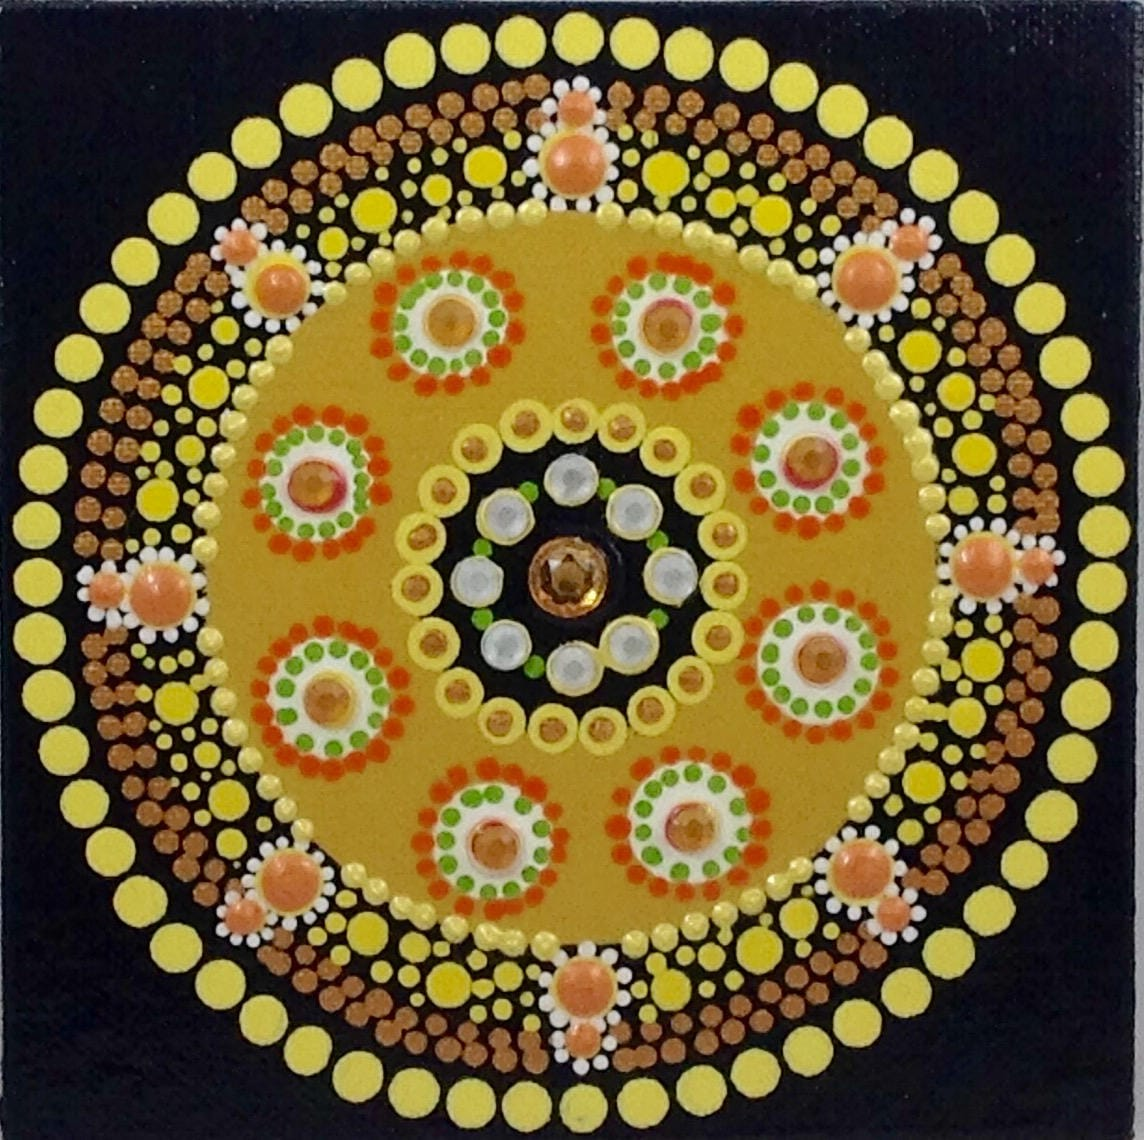 Old Fashioned Aboriginal Wall Art Pictures - The Wall Art ...